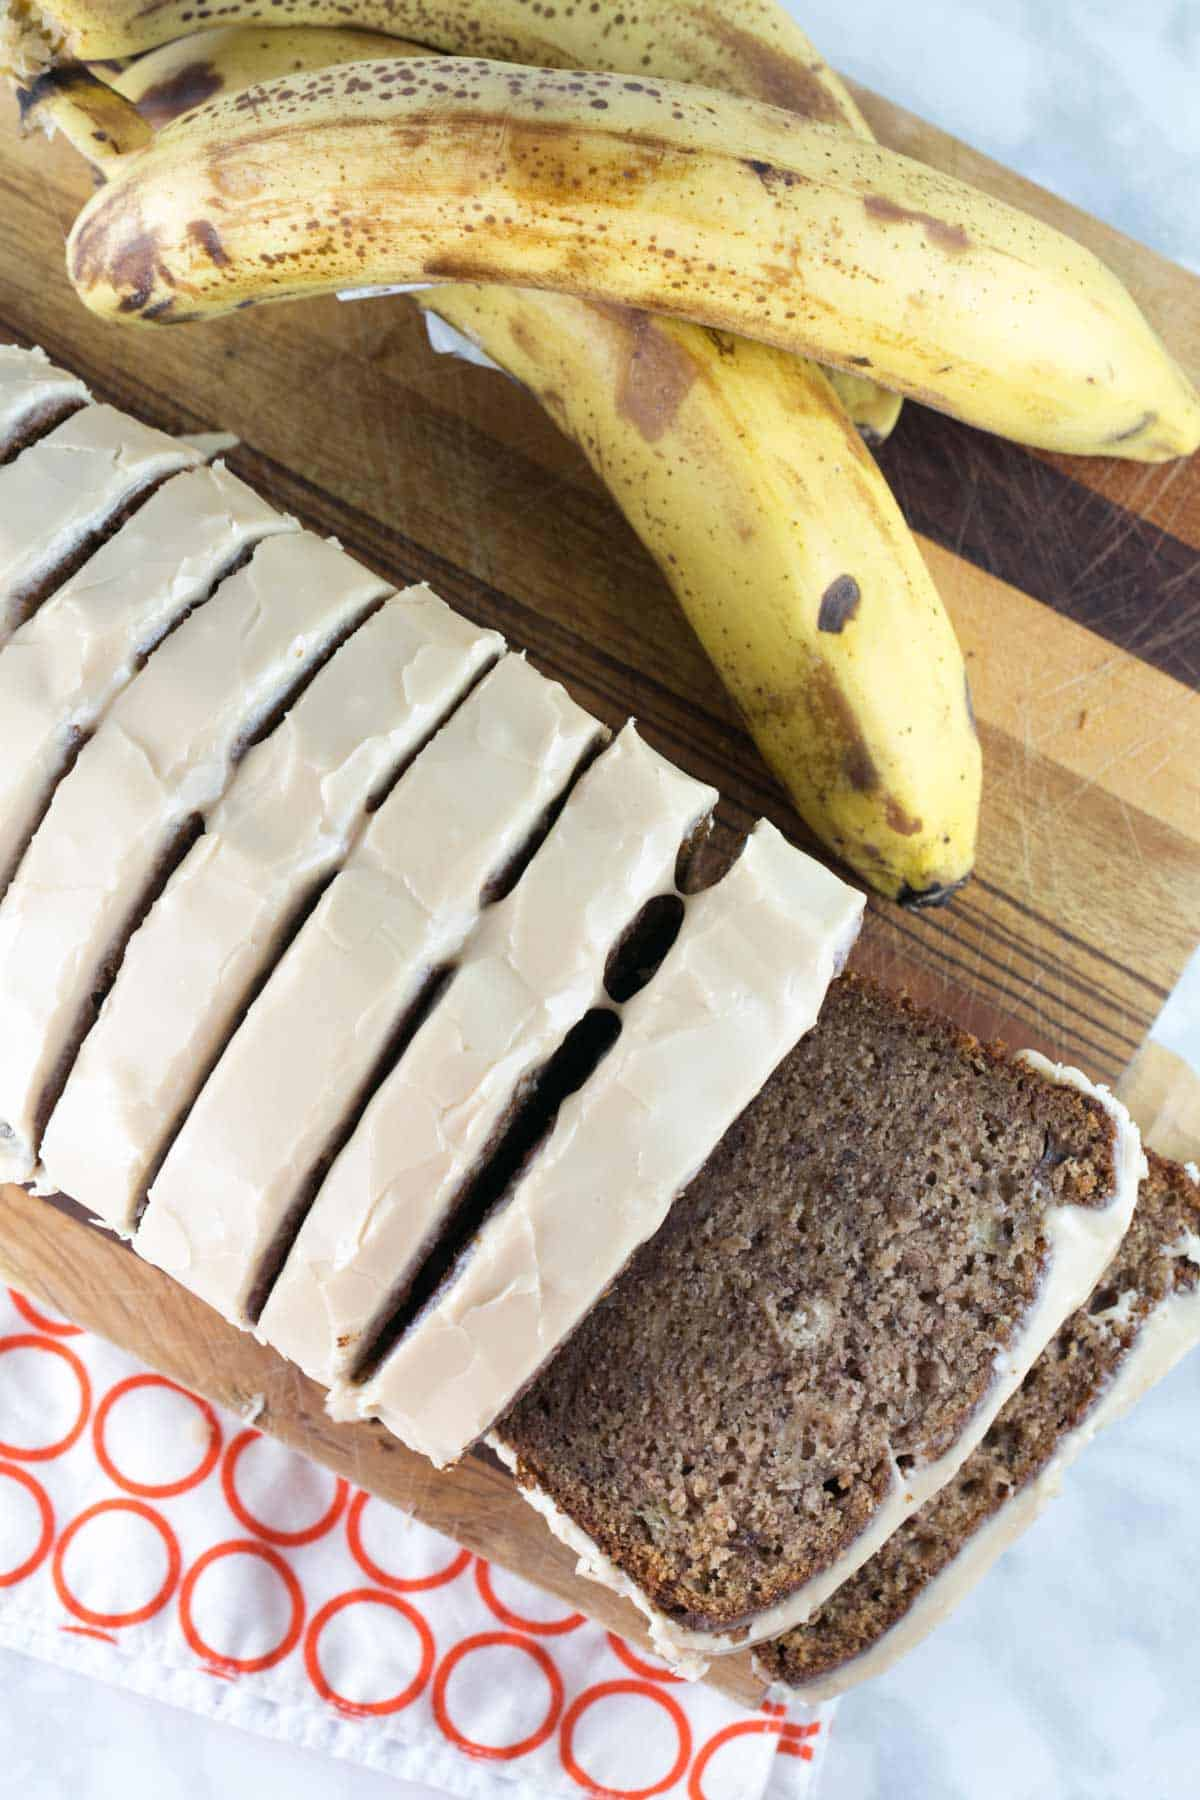 a loaf of maple glazed banana bread sliced on a wood cutting board